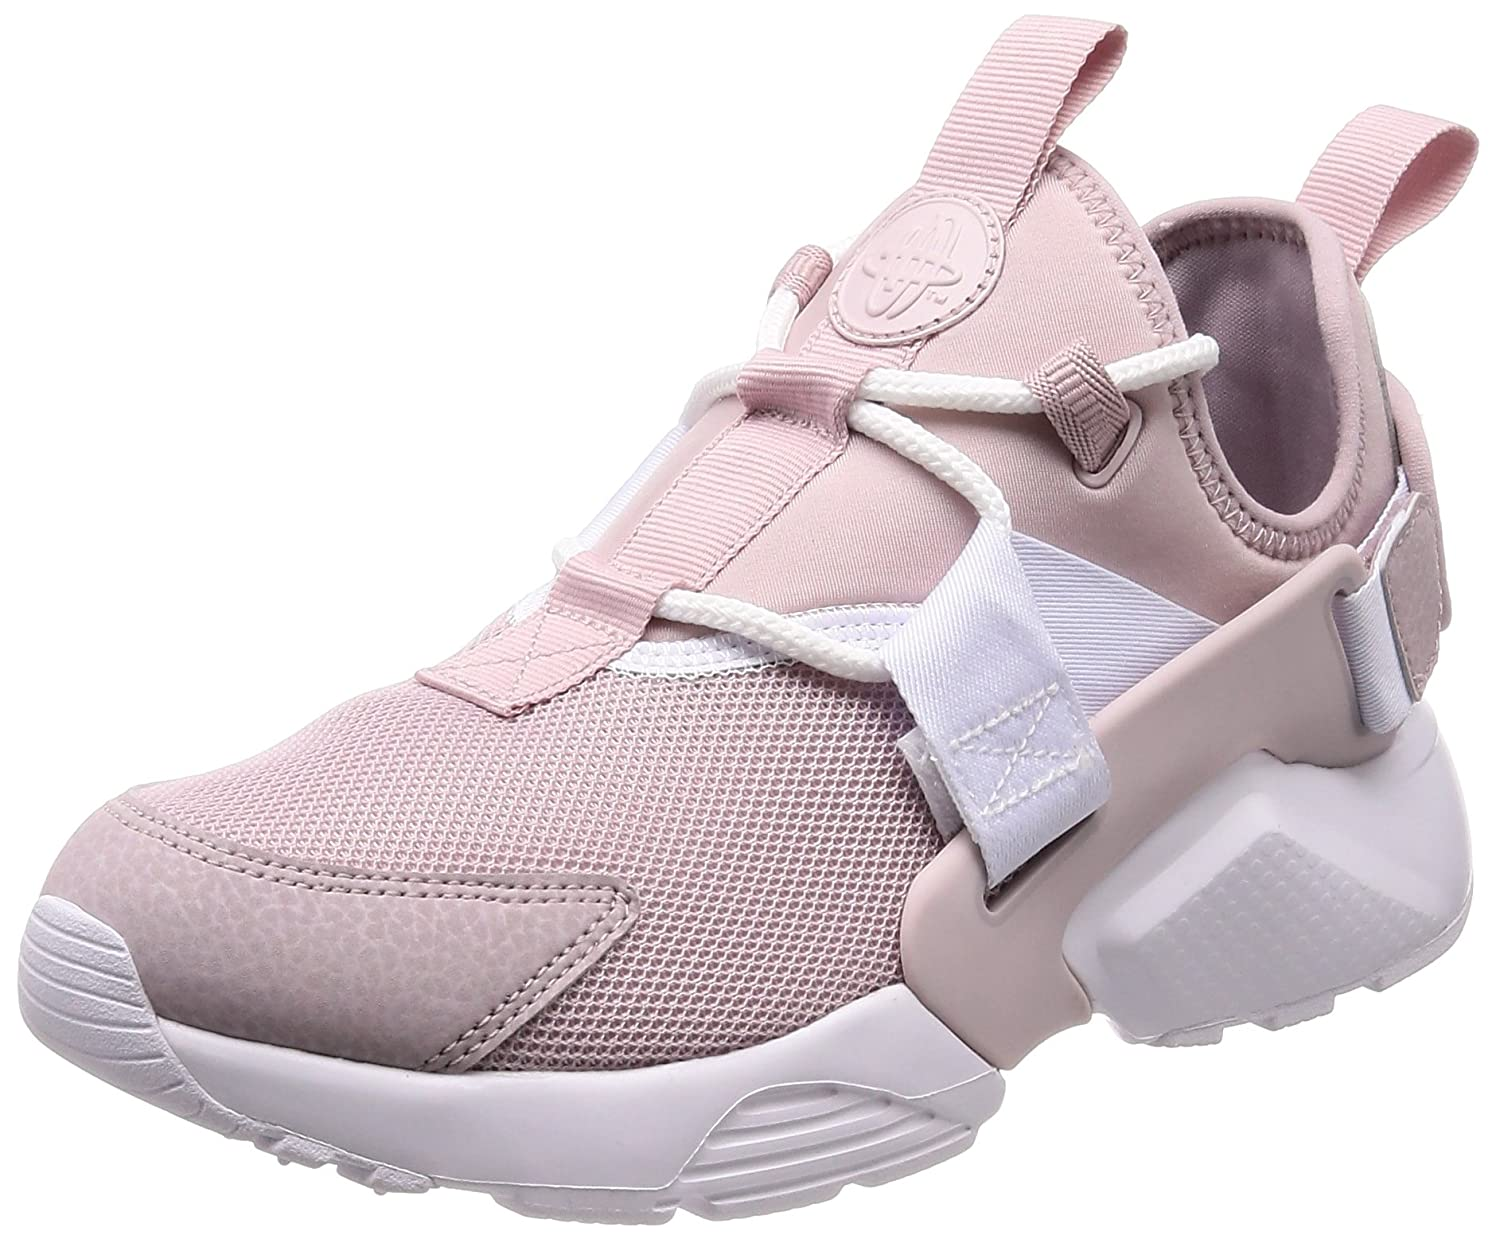 7205940930c Nike Women's Wmns Air Huarache City Low, PARTICLE ROSE, 10 US ...